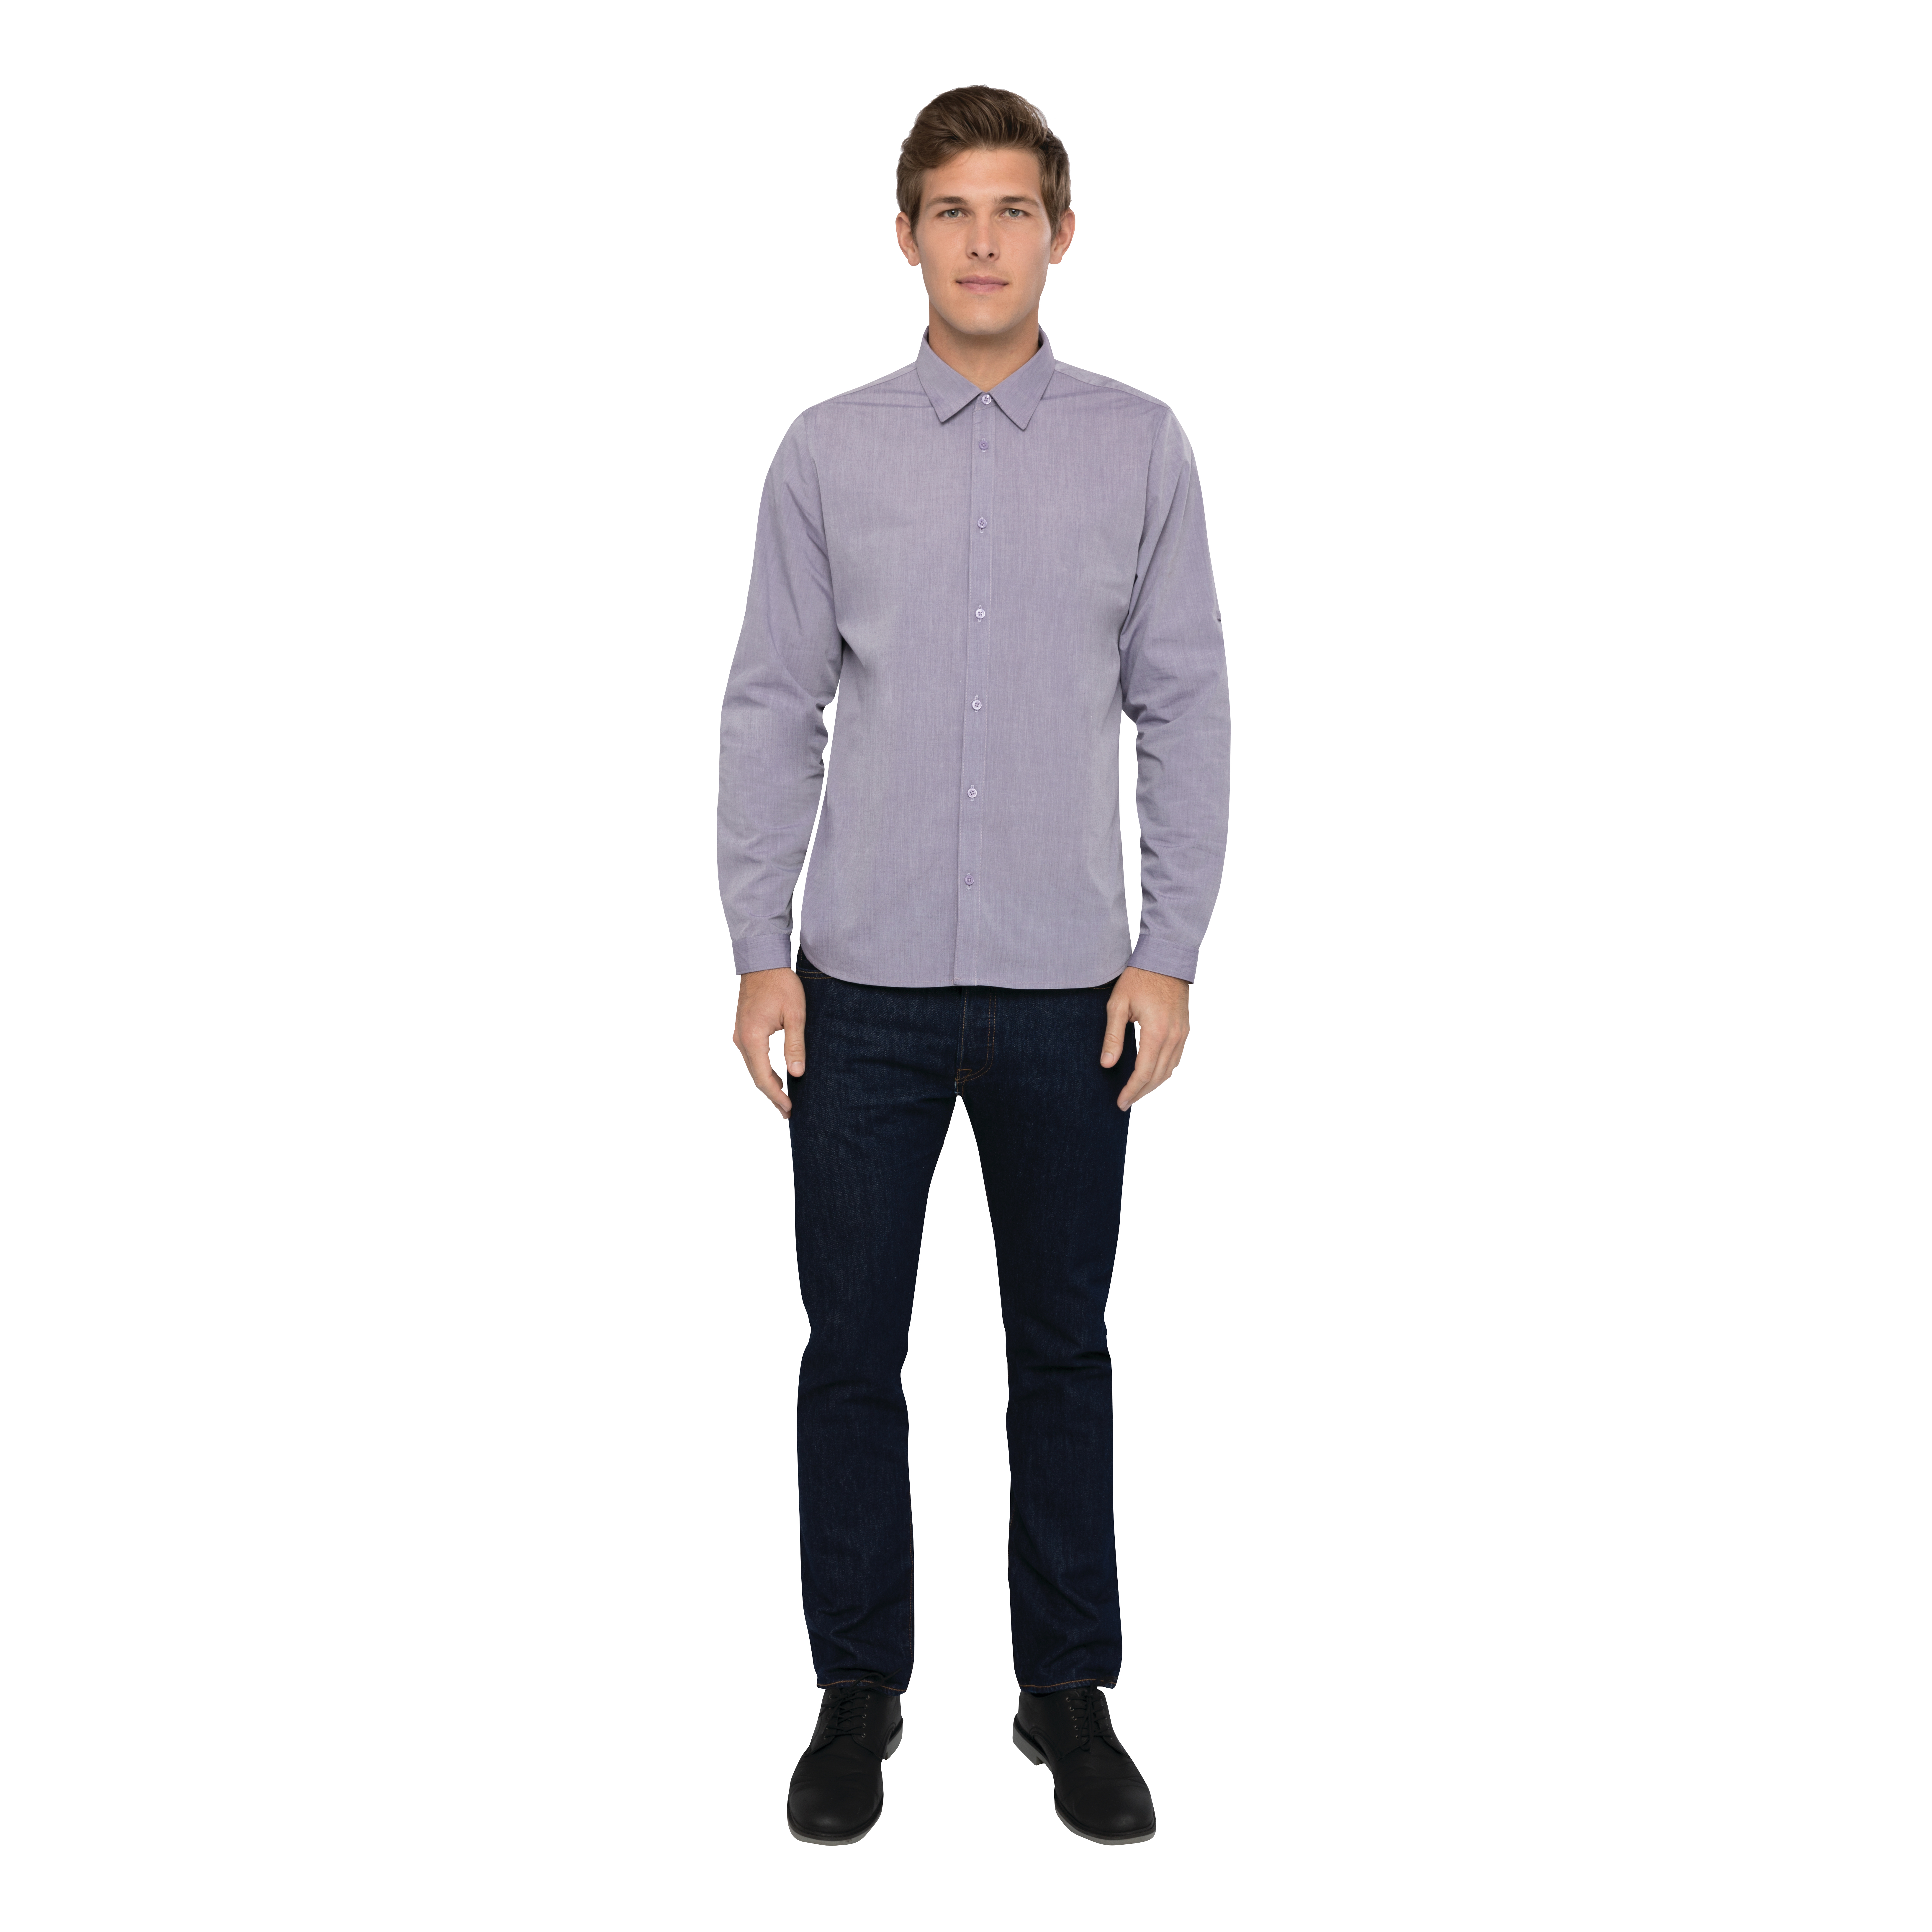 Chef Works SHC06PURL cook's shirt